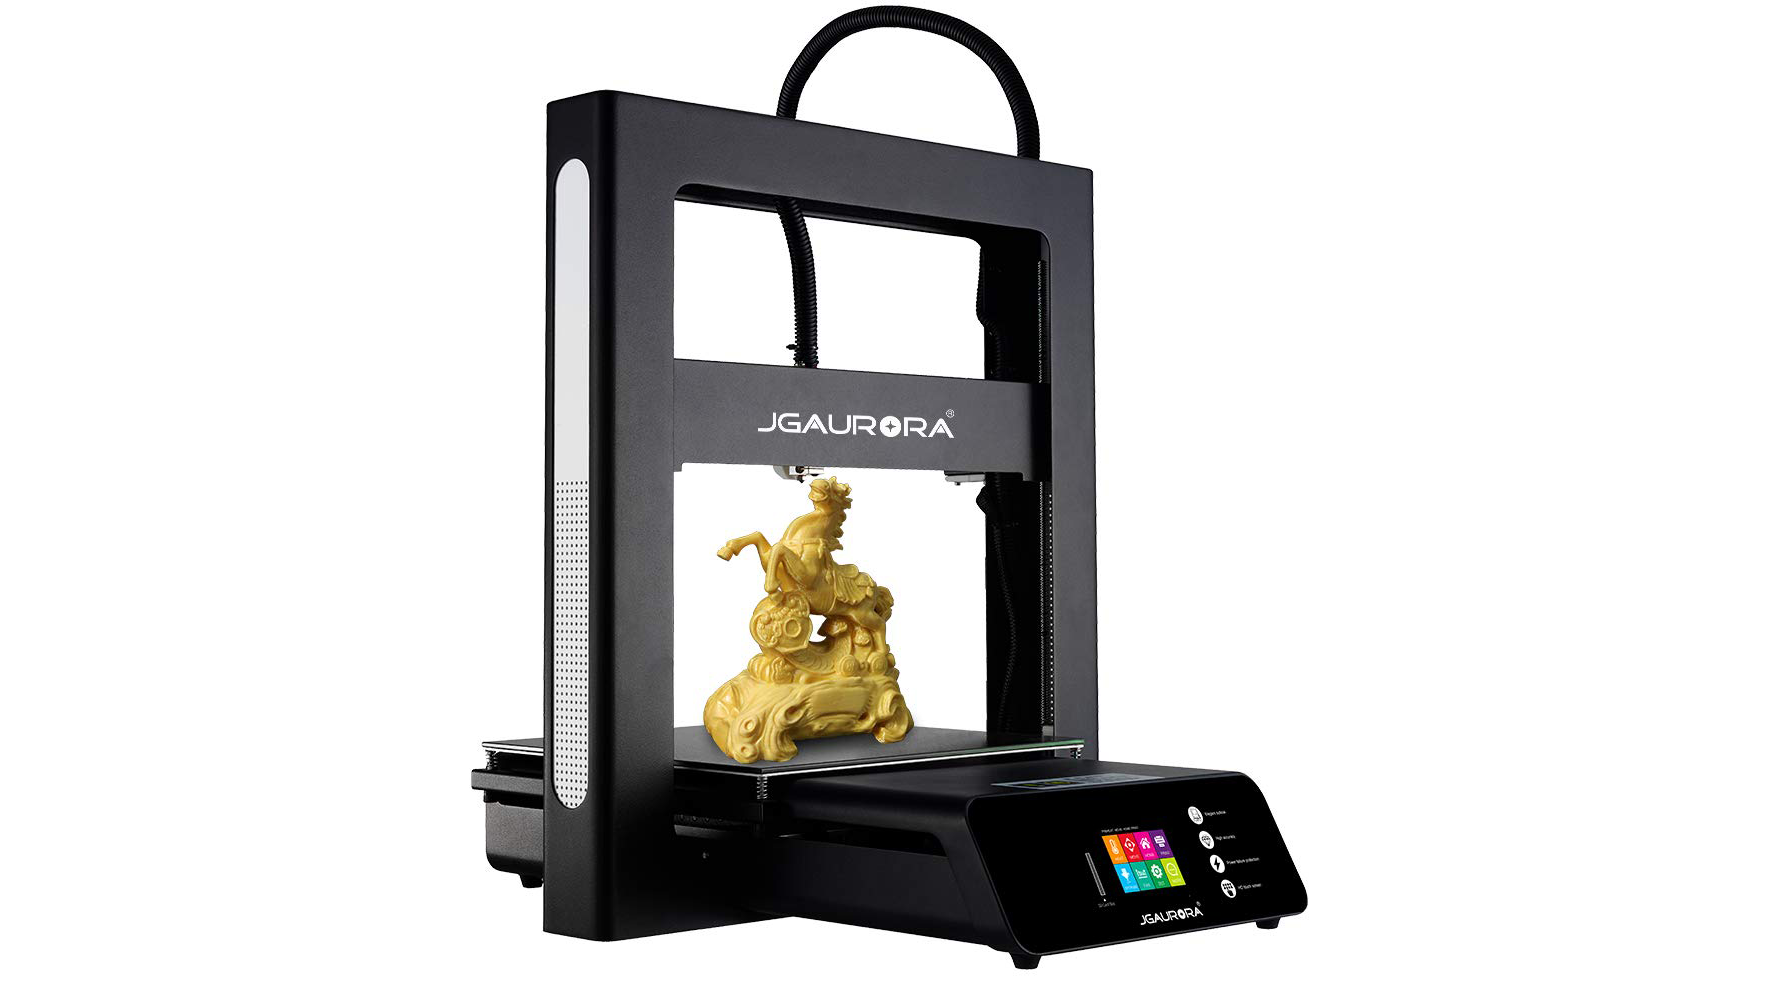 JGAurora A5S 3D Printer: Review the Specs | All3DP